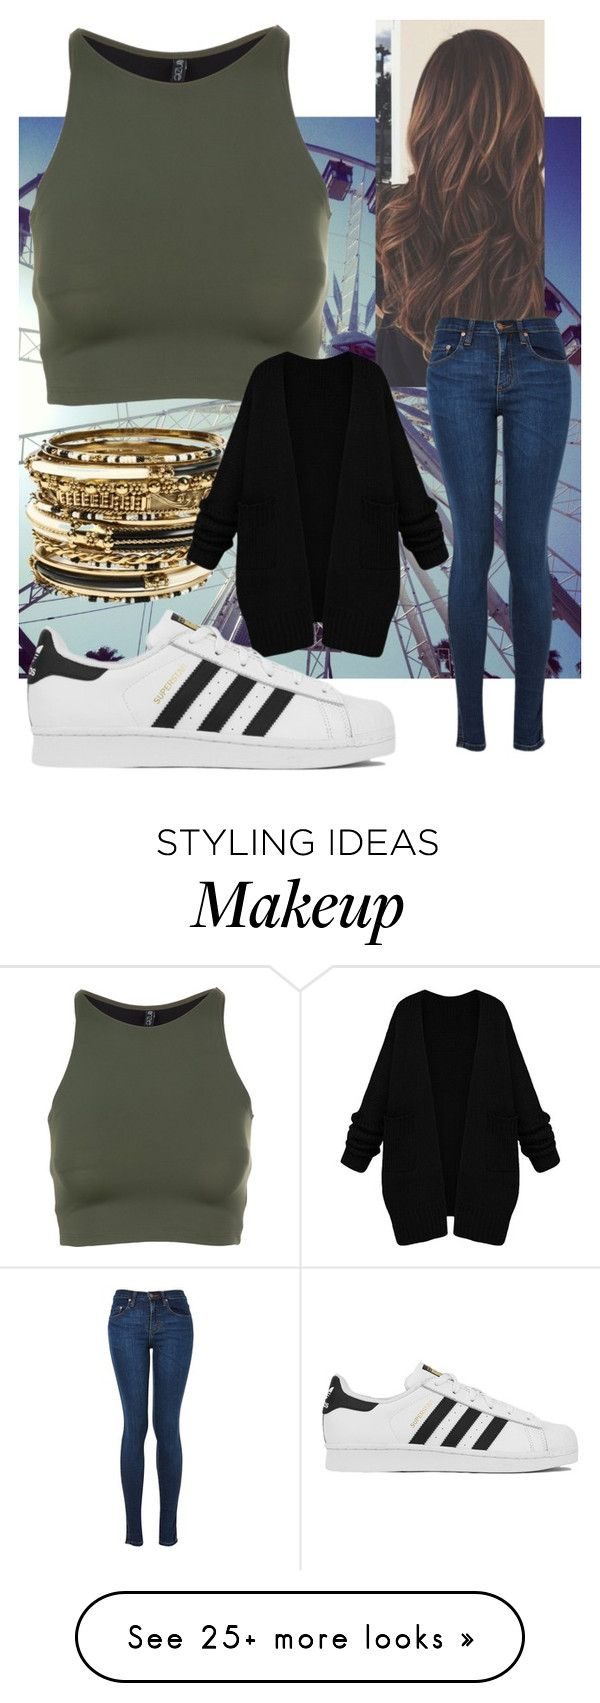 """""""Untitled #359"""" by chafashion143 on Polyvore featuring Amrita Singh, Onzie, adidas, women's clothing, women, female, woman, misses and juniors"""